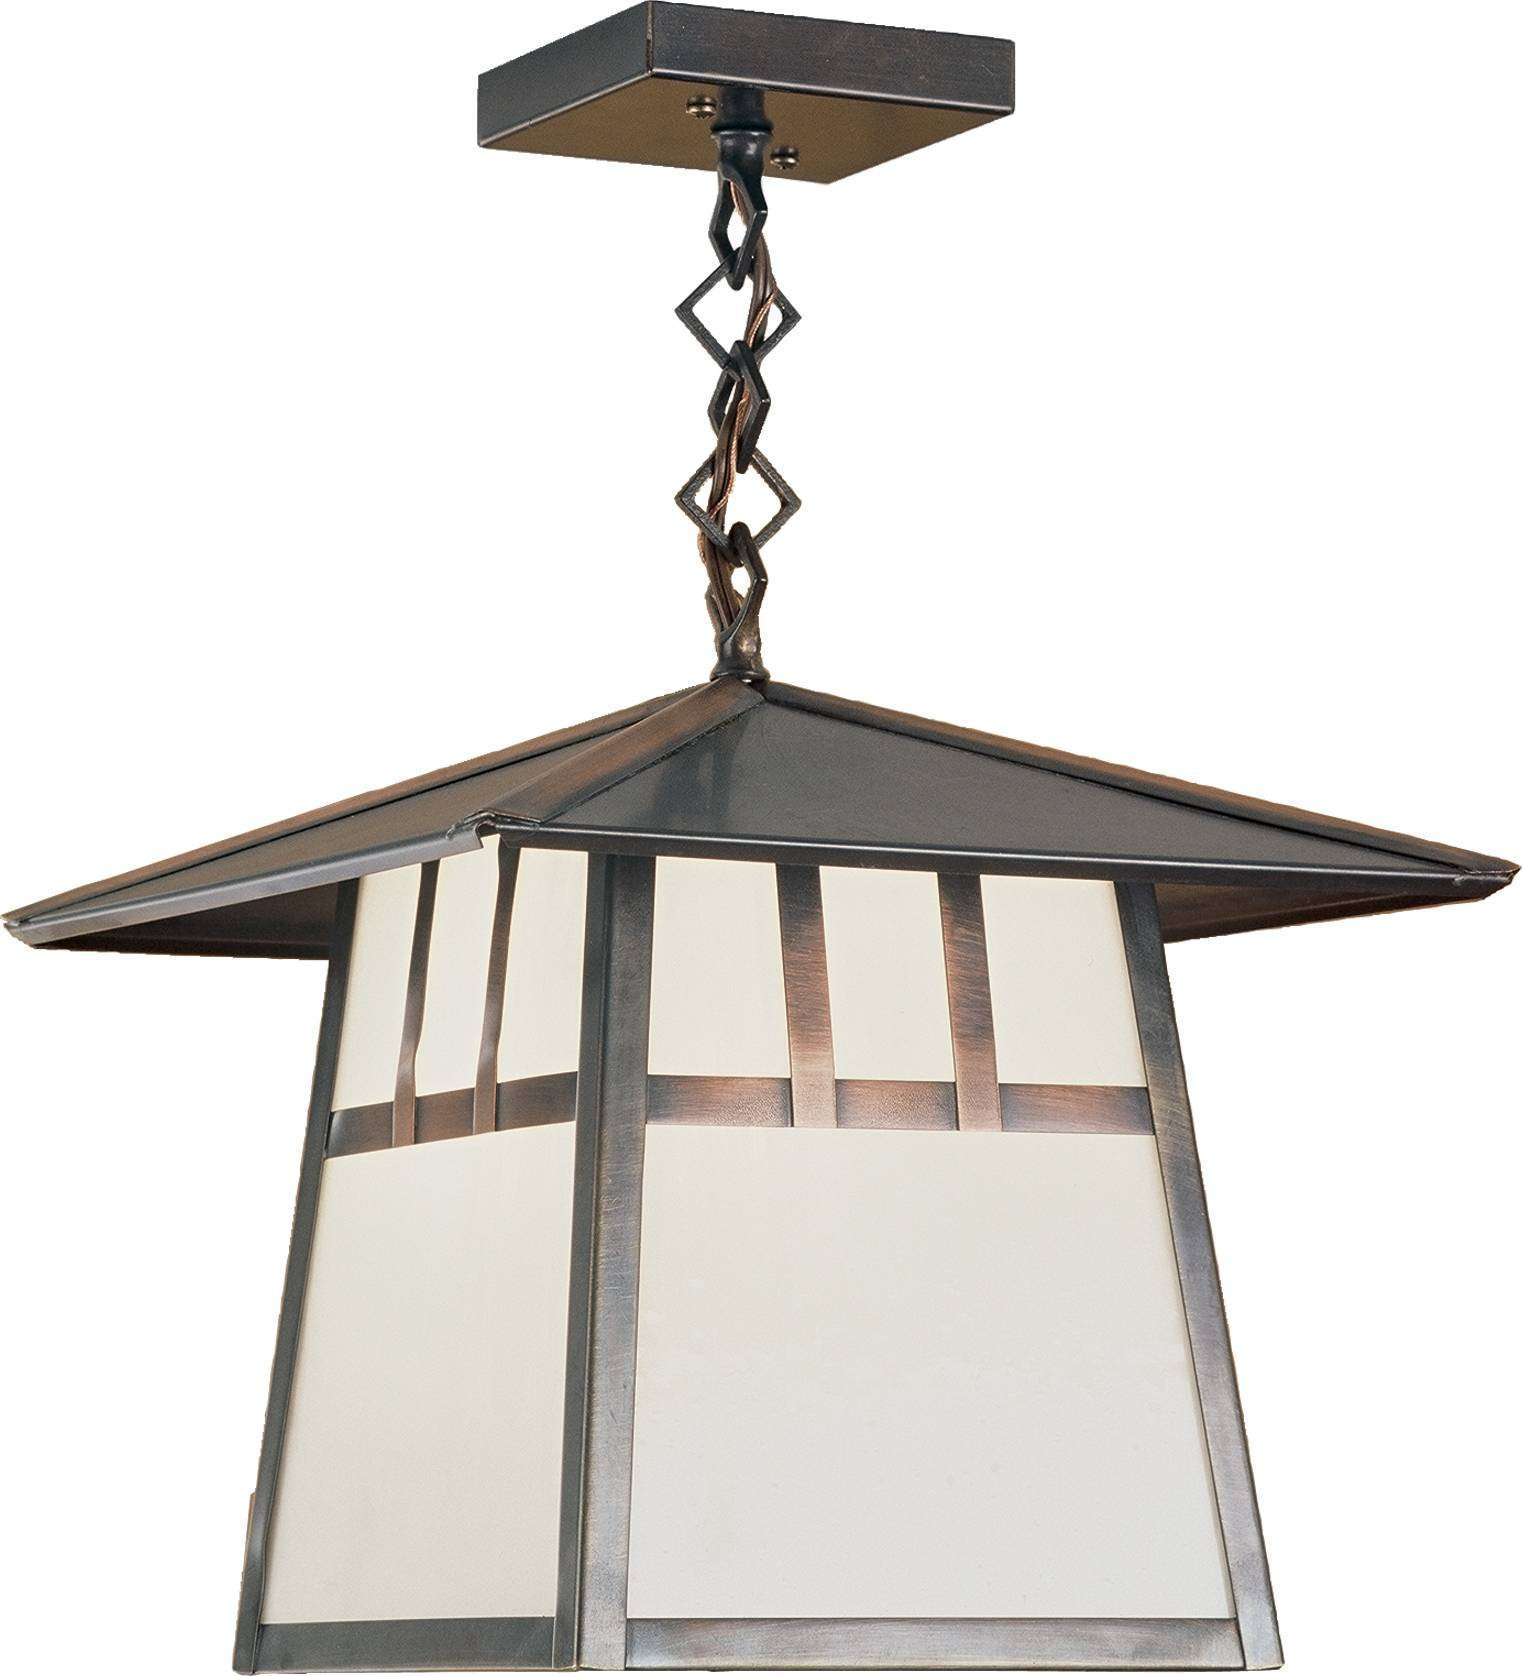 Meyda Tiffany 29528 Stillwater Double Bar Mission Ceiling Pendant in Craftsman Brown finish